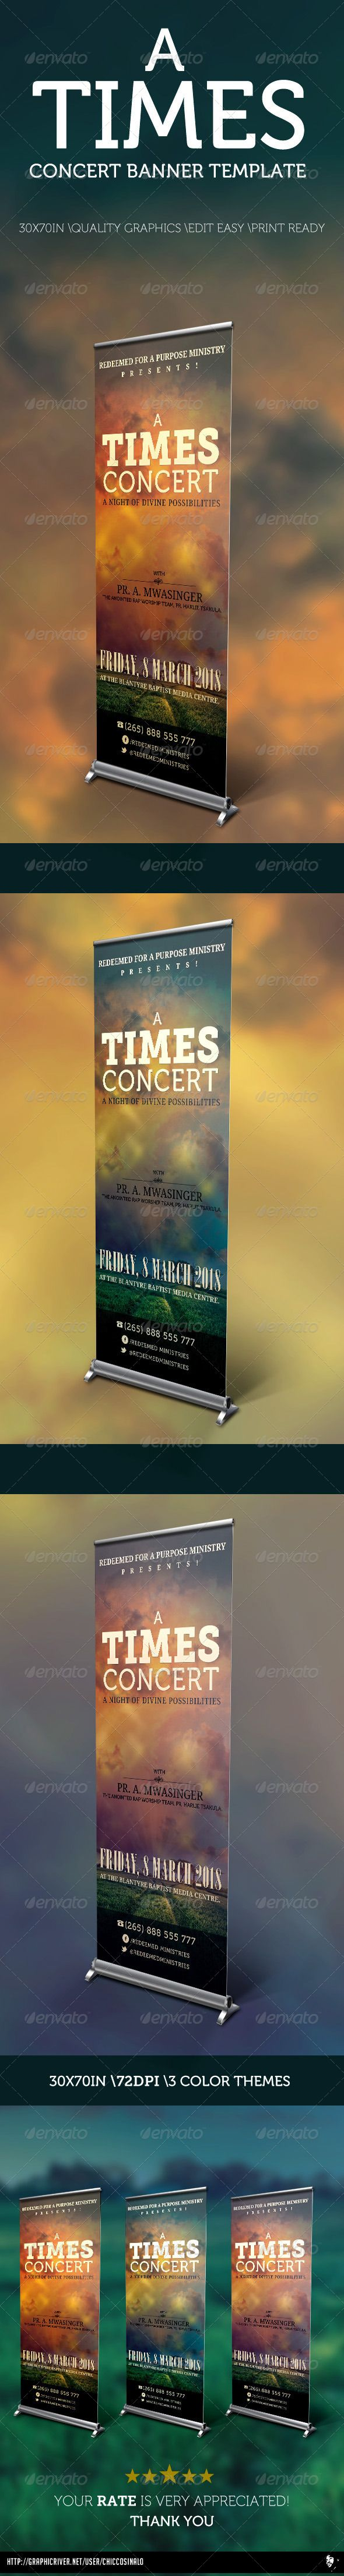 A Times Concert Banner Template, is a general banner design for a lot of usage like event advertising, concert awareness etc it is a clean, simple to edit and professional signage template. It is print ready, with 2 simple steps edit the text, insert your image, and you are set for print. $6.00